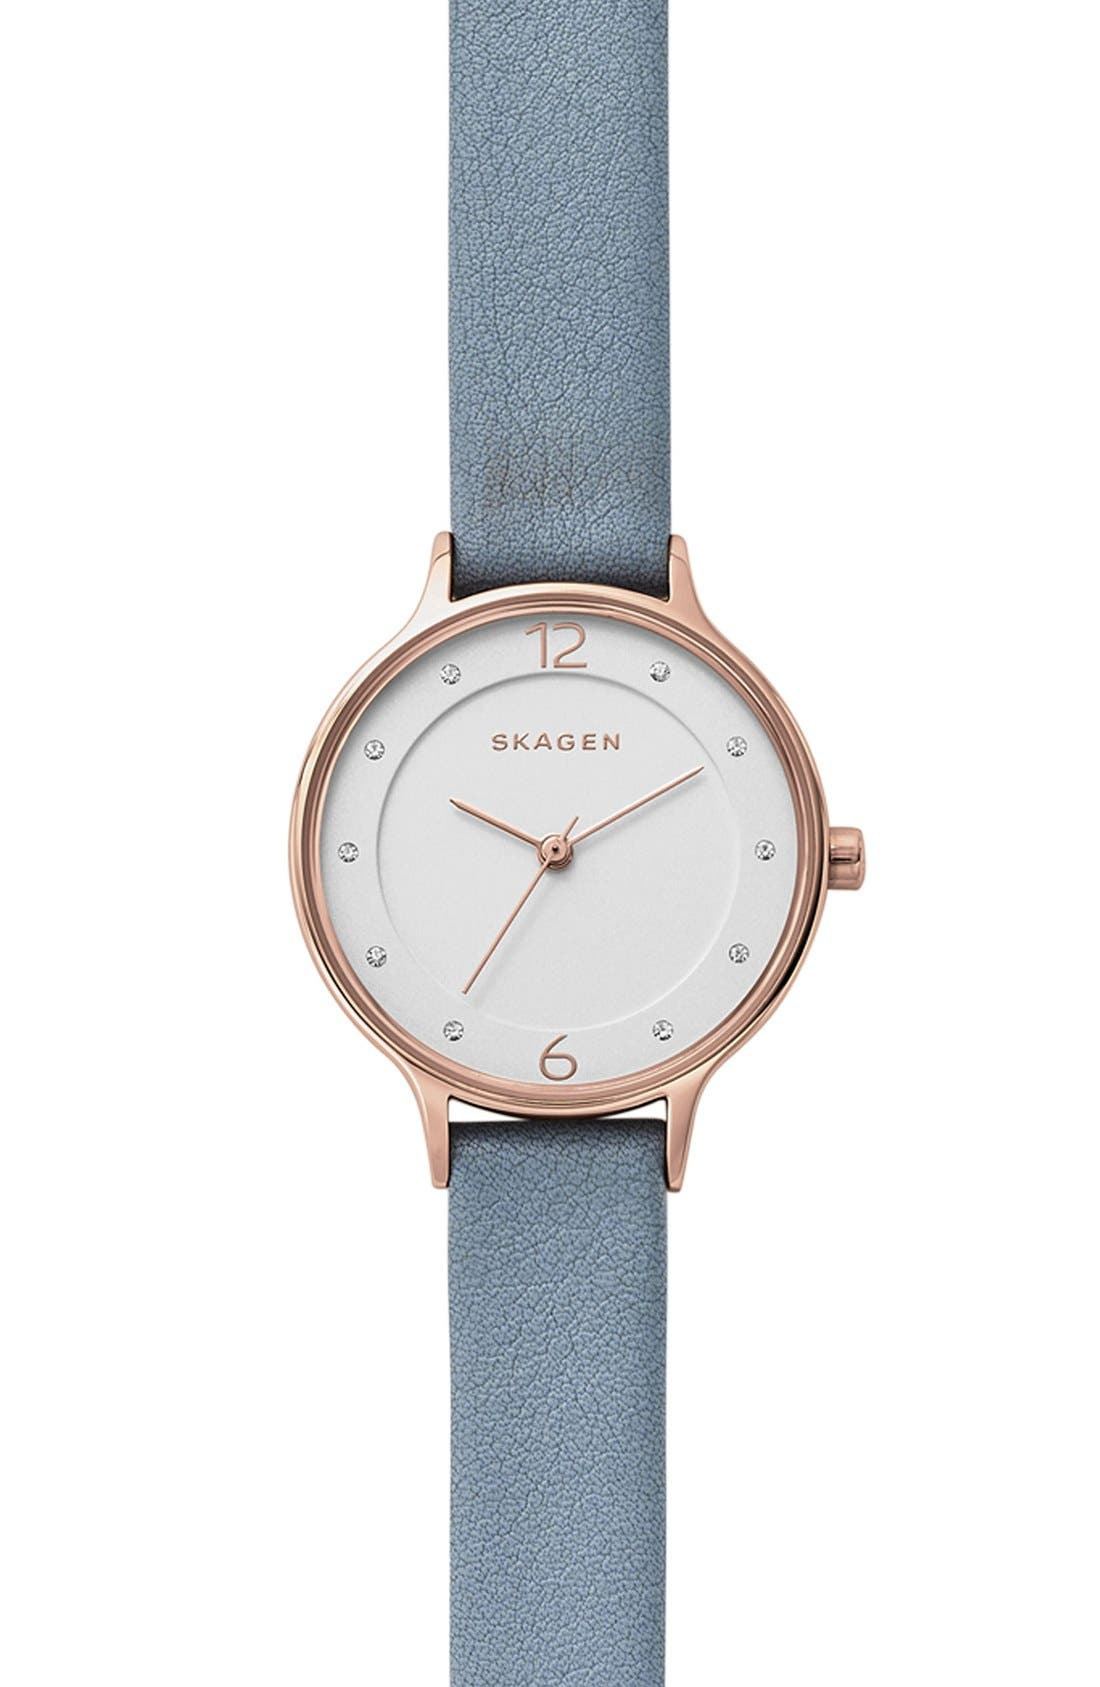 Main Image - Skagen Anita Leather Strap Watch, 30mm